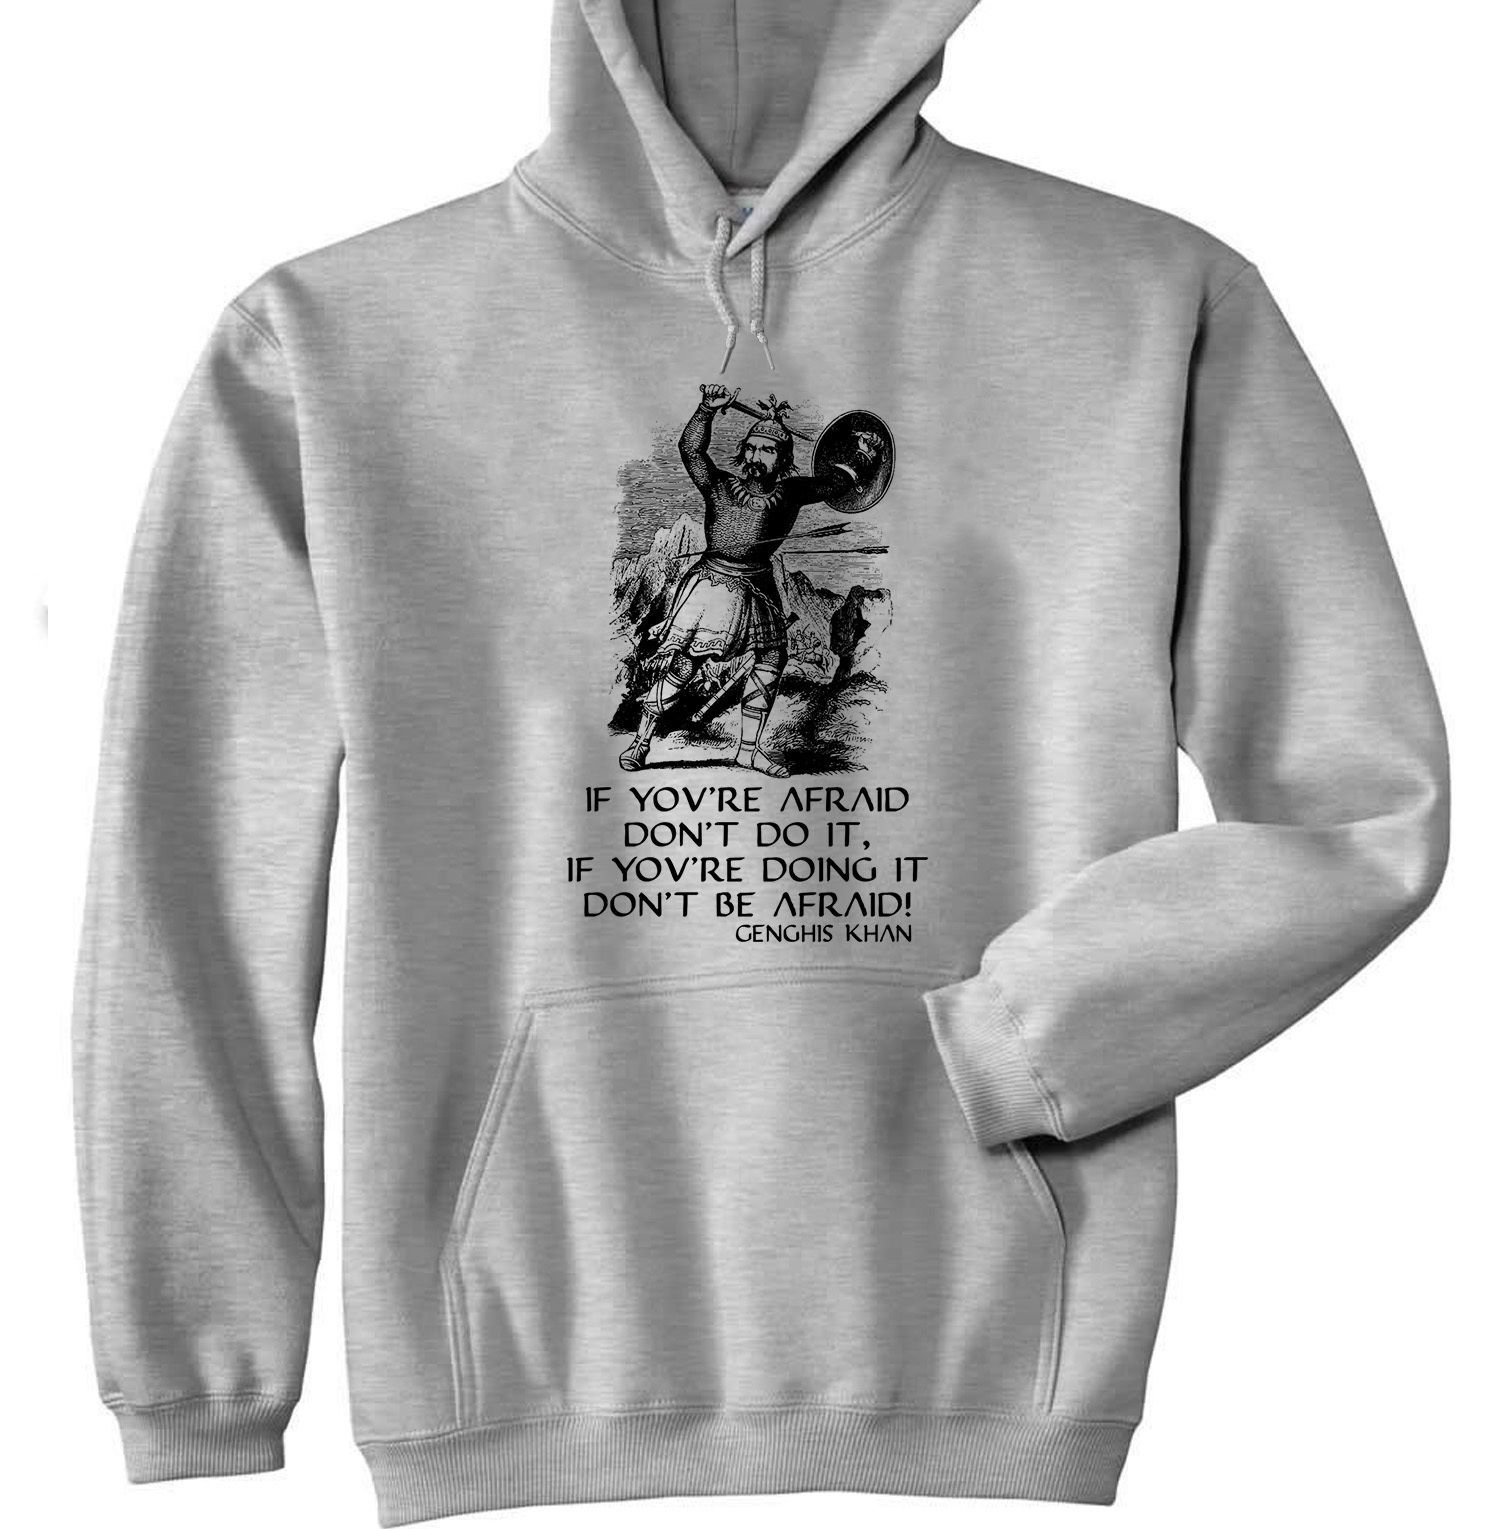 GENGHIS KHAN AFRAID QUOTE - NEW COTTON GREY HOODIE